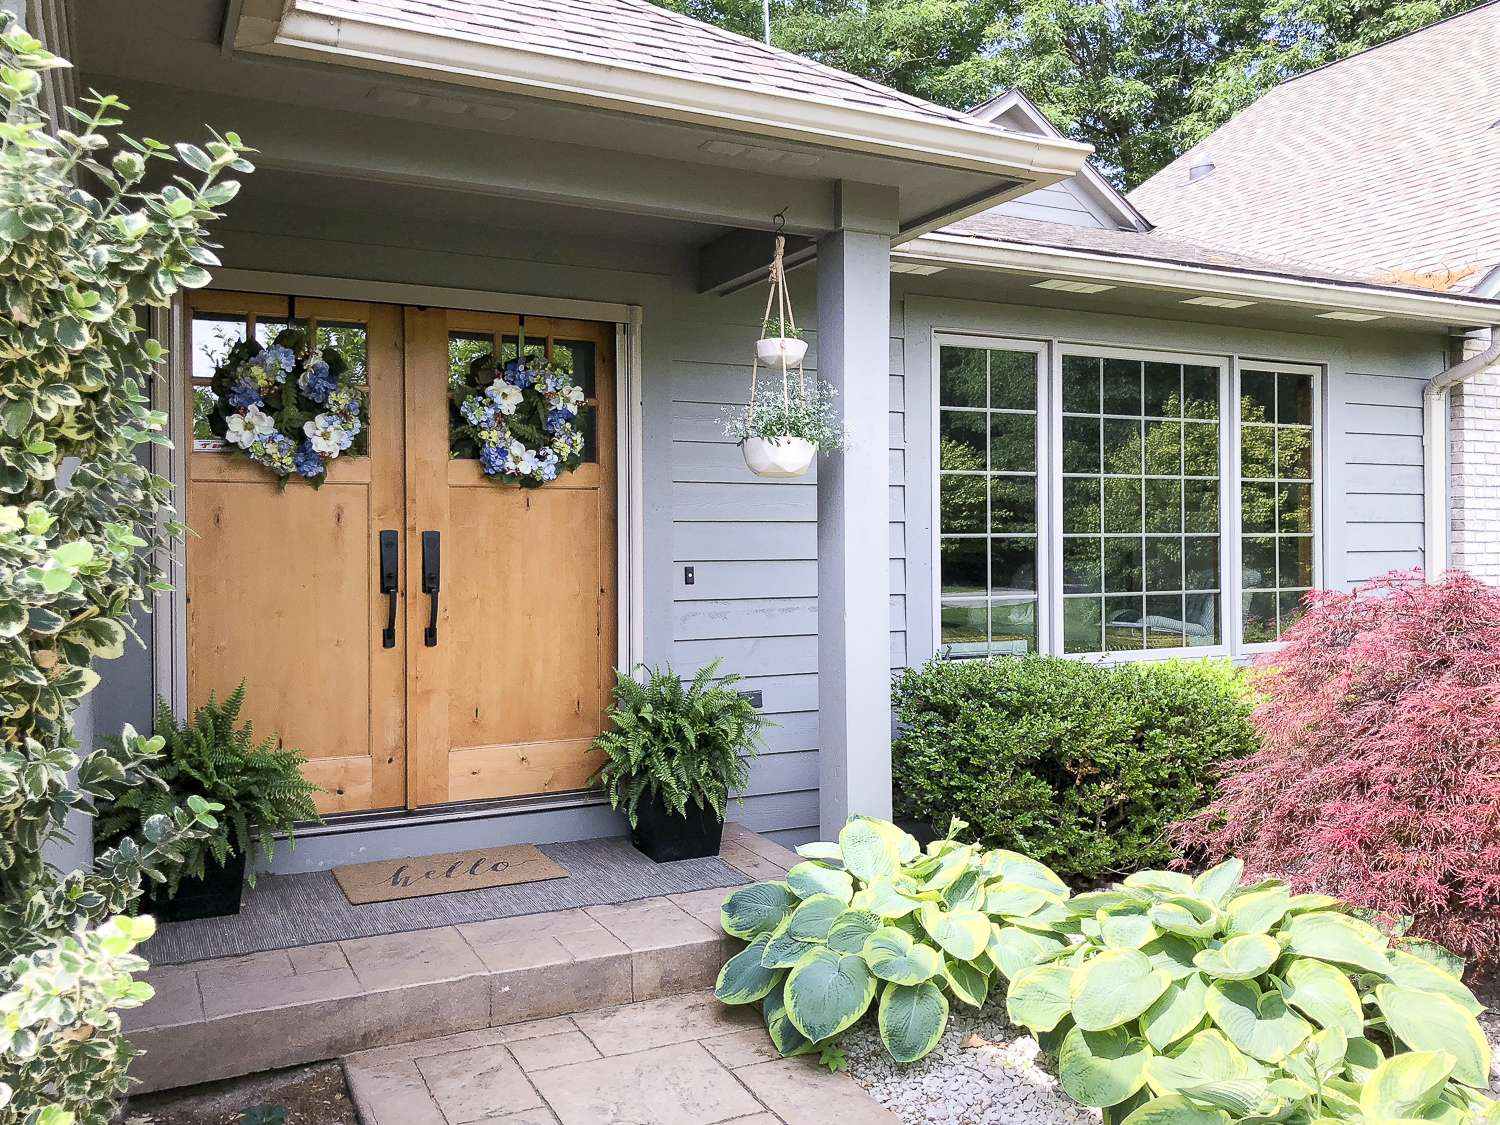 How To Create a Welcoming Summer Entryway. Easy ideas to design your summer entryway for easy, breezy, & simple entertaining. Welcome your guests with style.